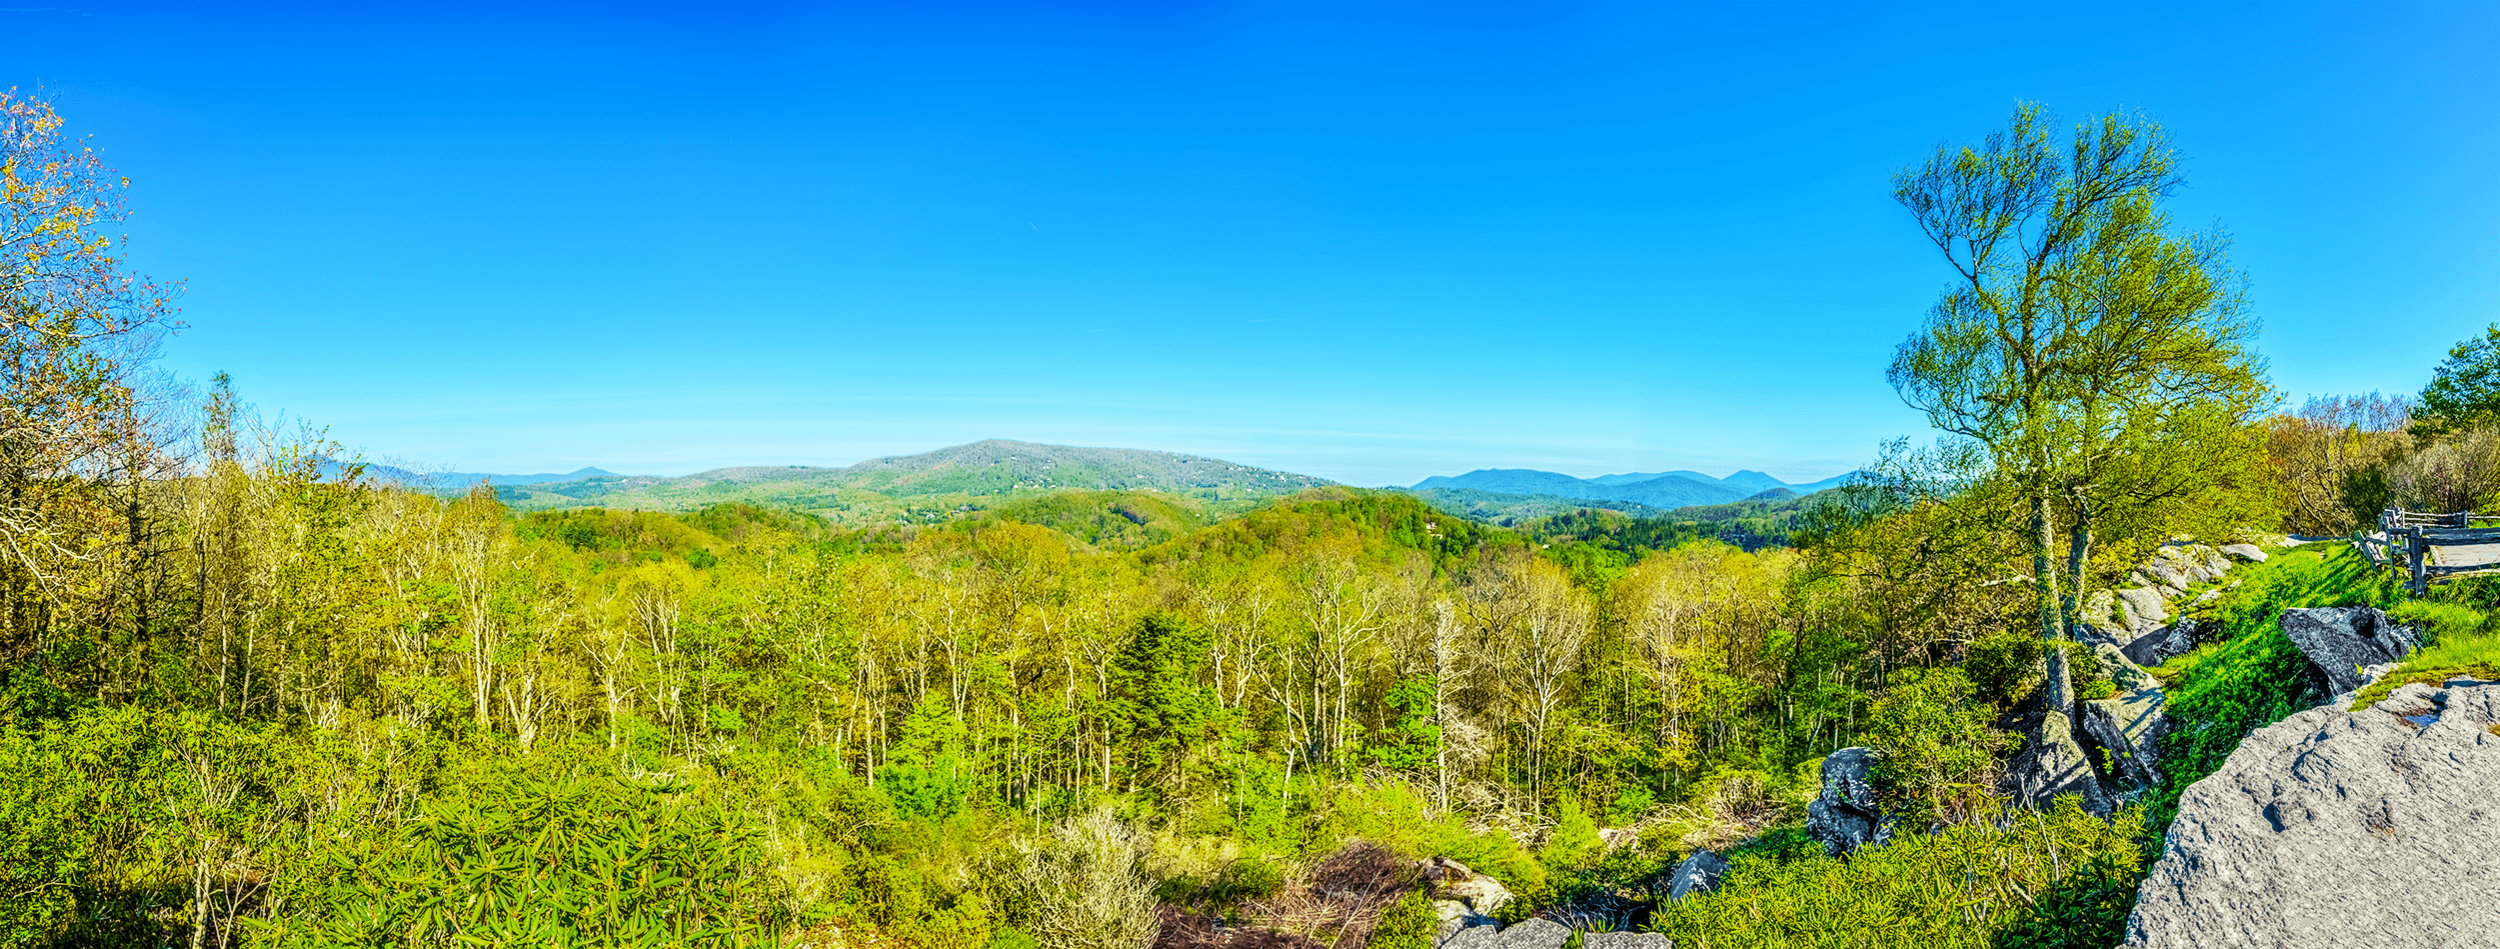 Raven Rocks Overlook  faces  Flat Top Mountain  with an elevation of 4,469 feet (1,362 meters). To the west of  Flat Top Mountain  slightly behind the trees is  Calloway Peak , the highest point of  Grandfather Mountain  with an elevation 5,964 feet (1,817 meters). To the east of  Flat Top Mountain  are  Snakeden Mountain  (4,485 feet - 1,367 meters),  Rich Mountain  (4,746 feet - 1,447 meters),  Snake Mountain  (5,568 feet - 1,697 meters) and  Elk Knob  (5,520 feet - 1,682 meters).